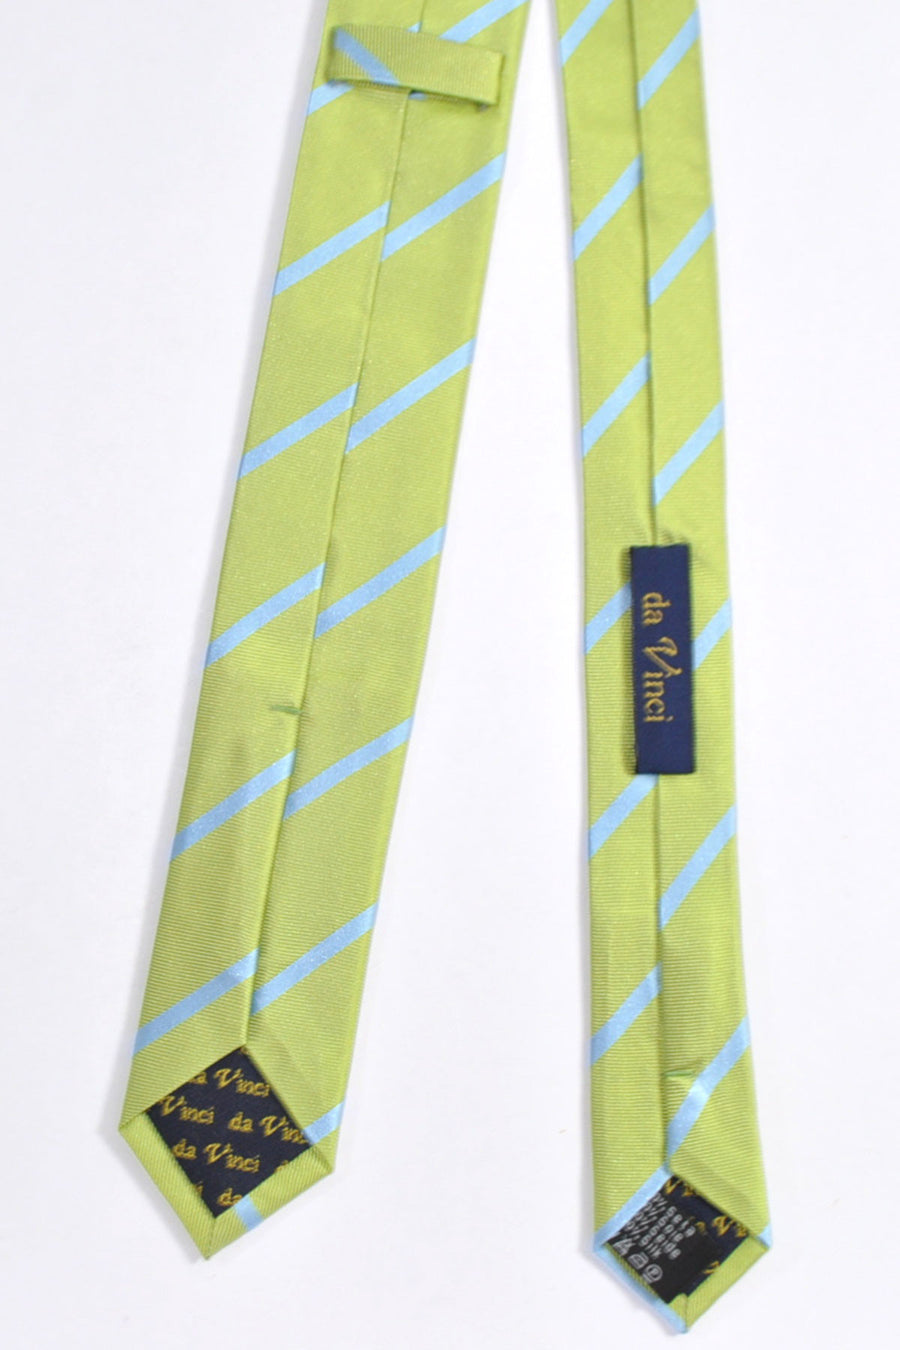 Da Vinci Skinny Tie Lime Sky Blue Stripes - Made in Italy